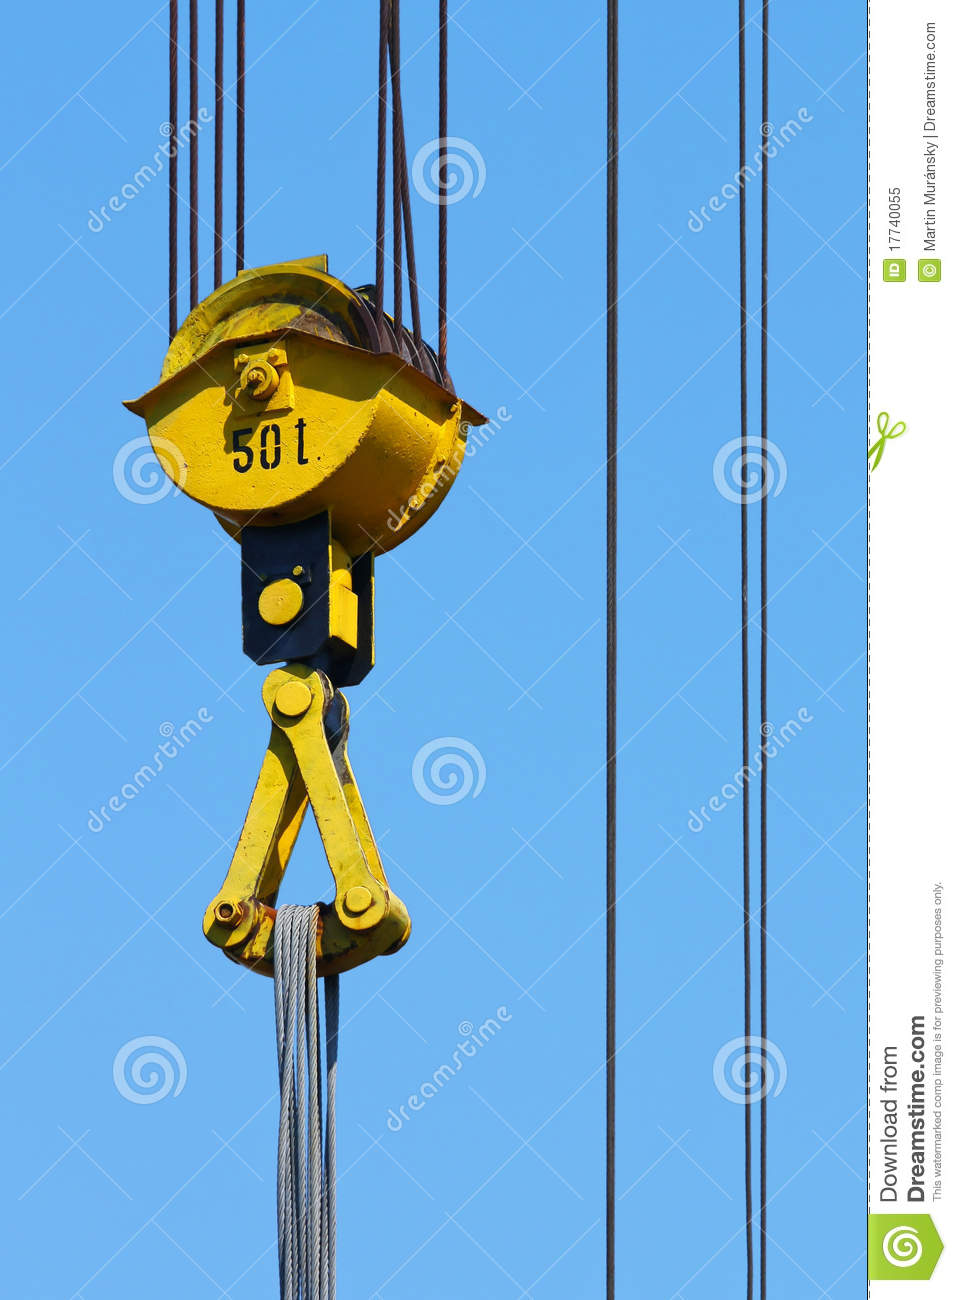 Pulleys In Cranes : Crane pulley royalty free stock photo image